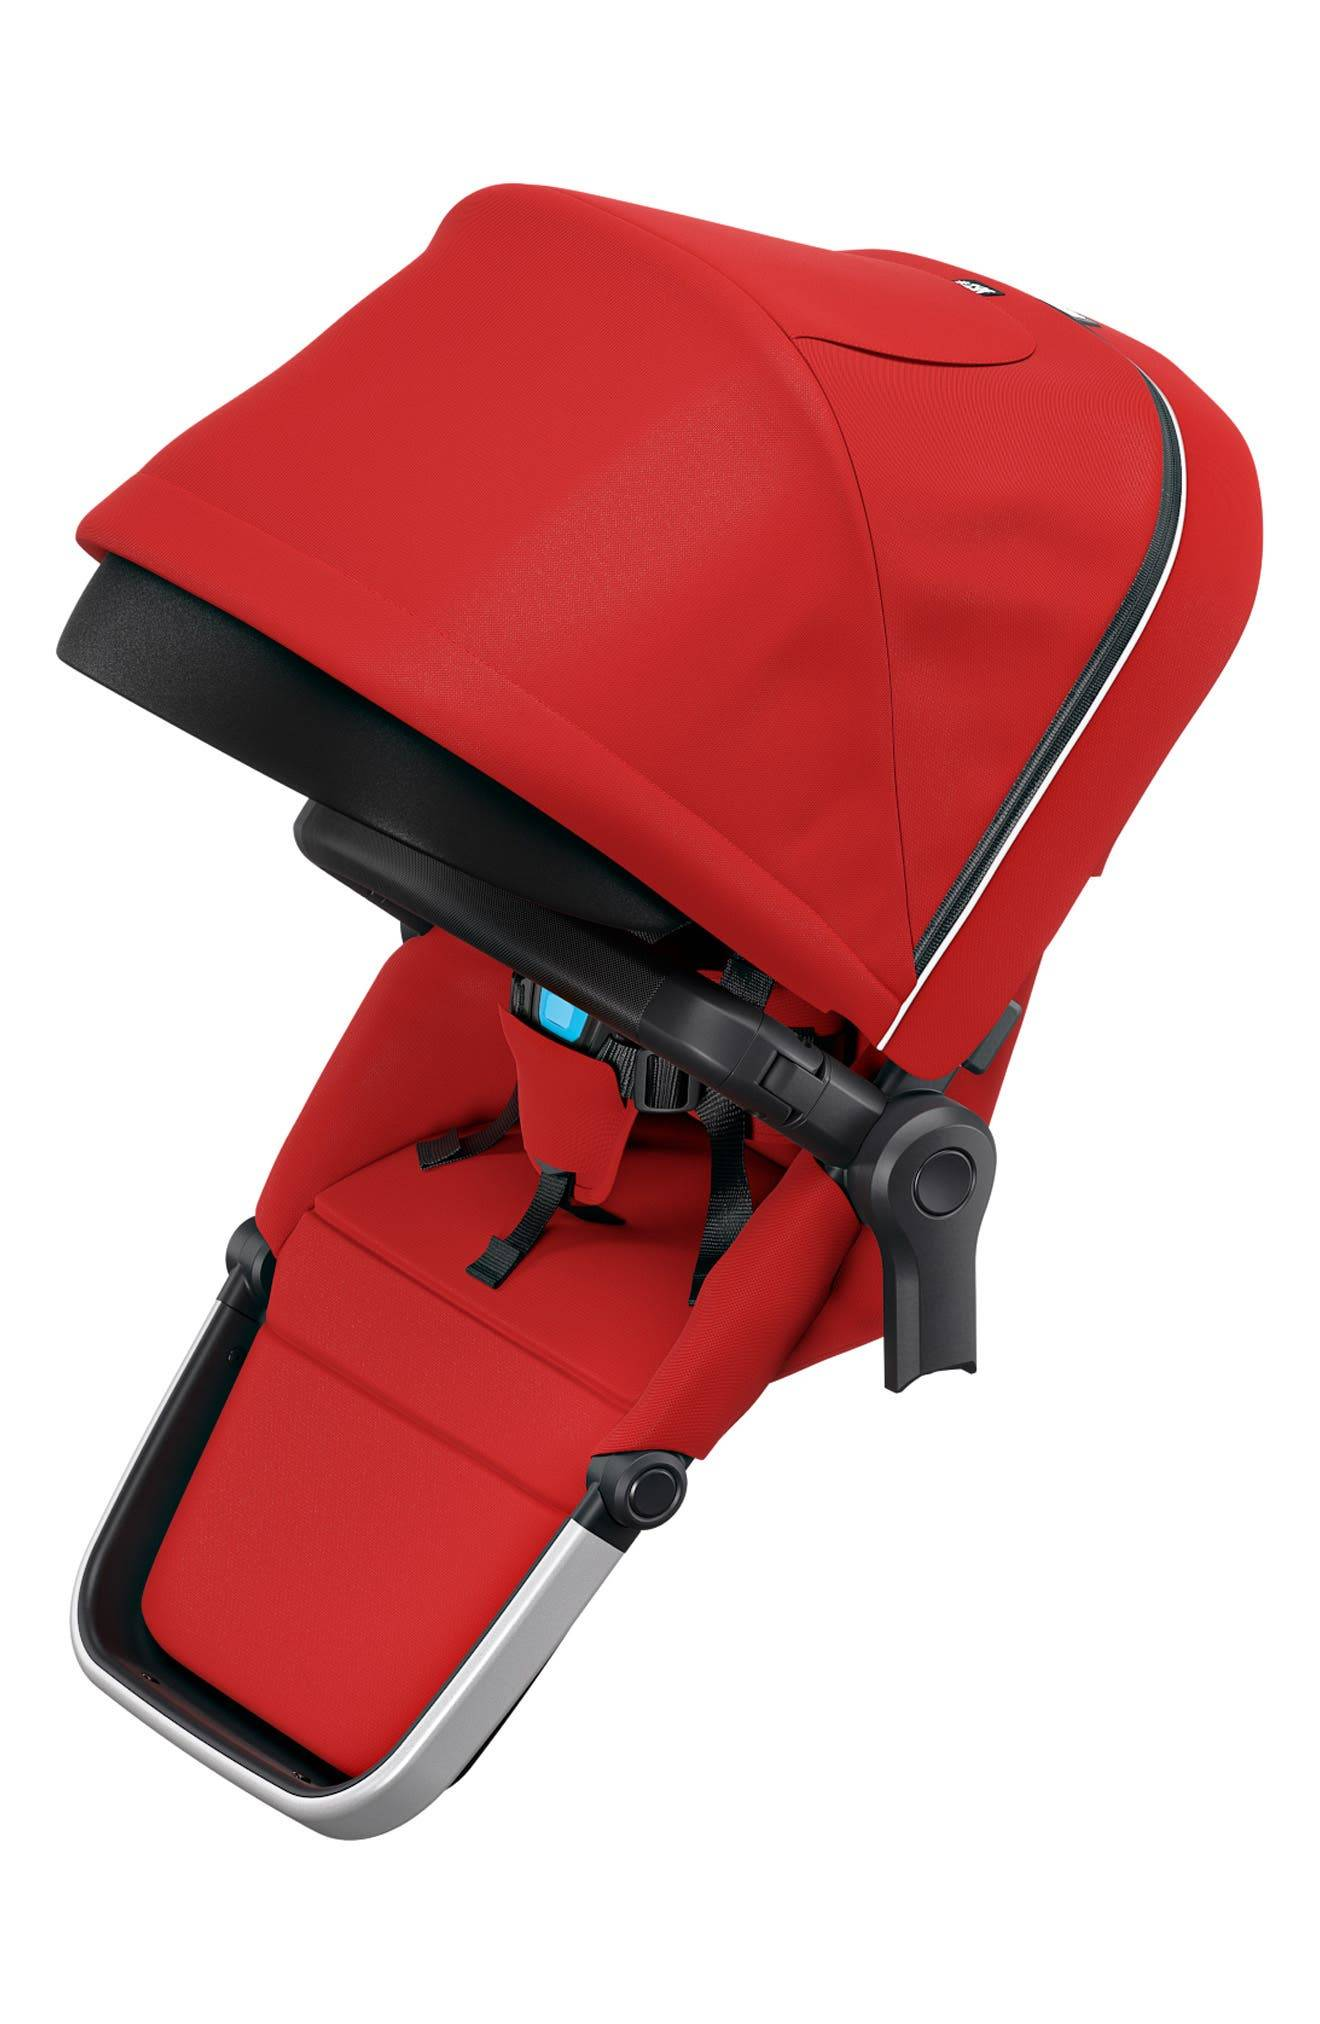 Thule Infant Thule Sibling Seat Accessory For Thule Sleek Stroller, Size One Size - Red